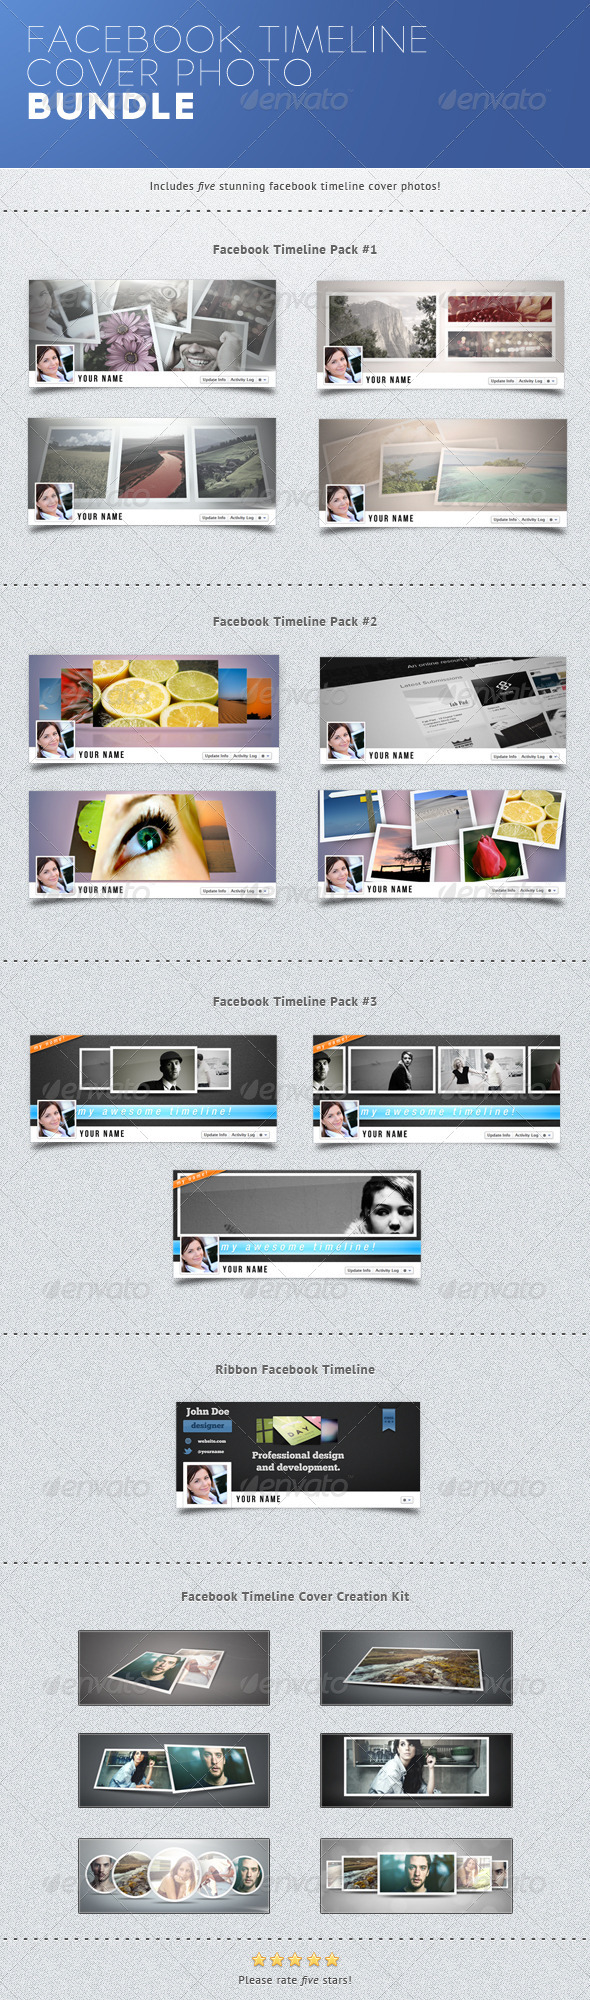 GraphicRiver Facebook Timeline Covers Bundle 2642446